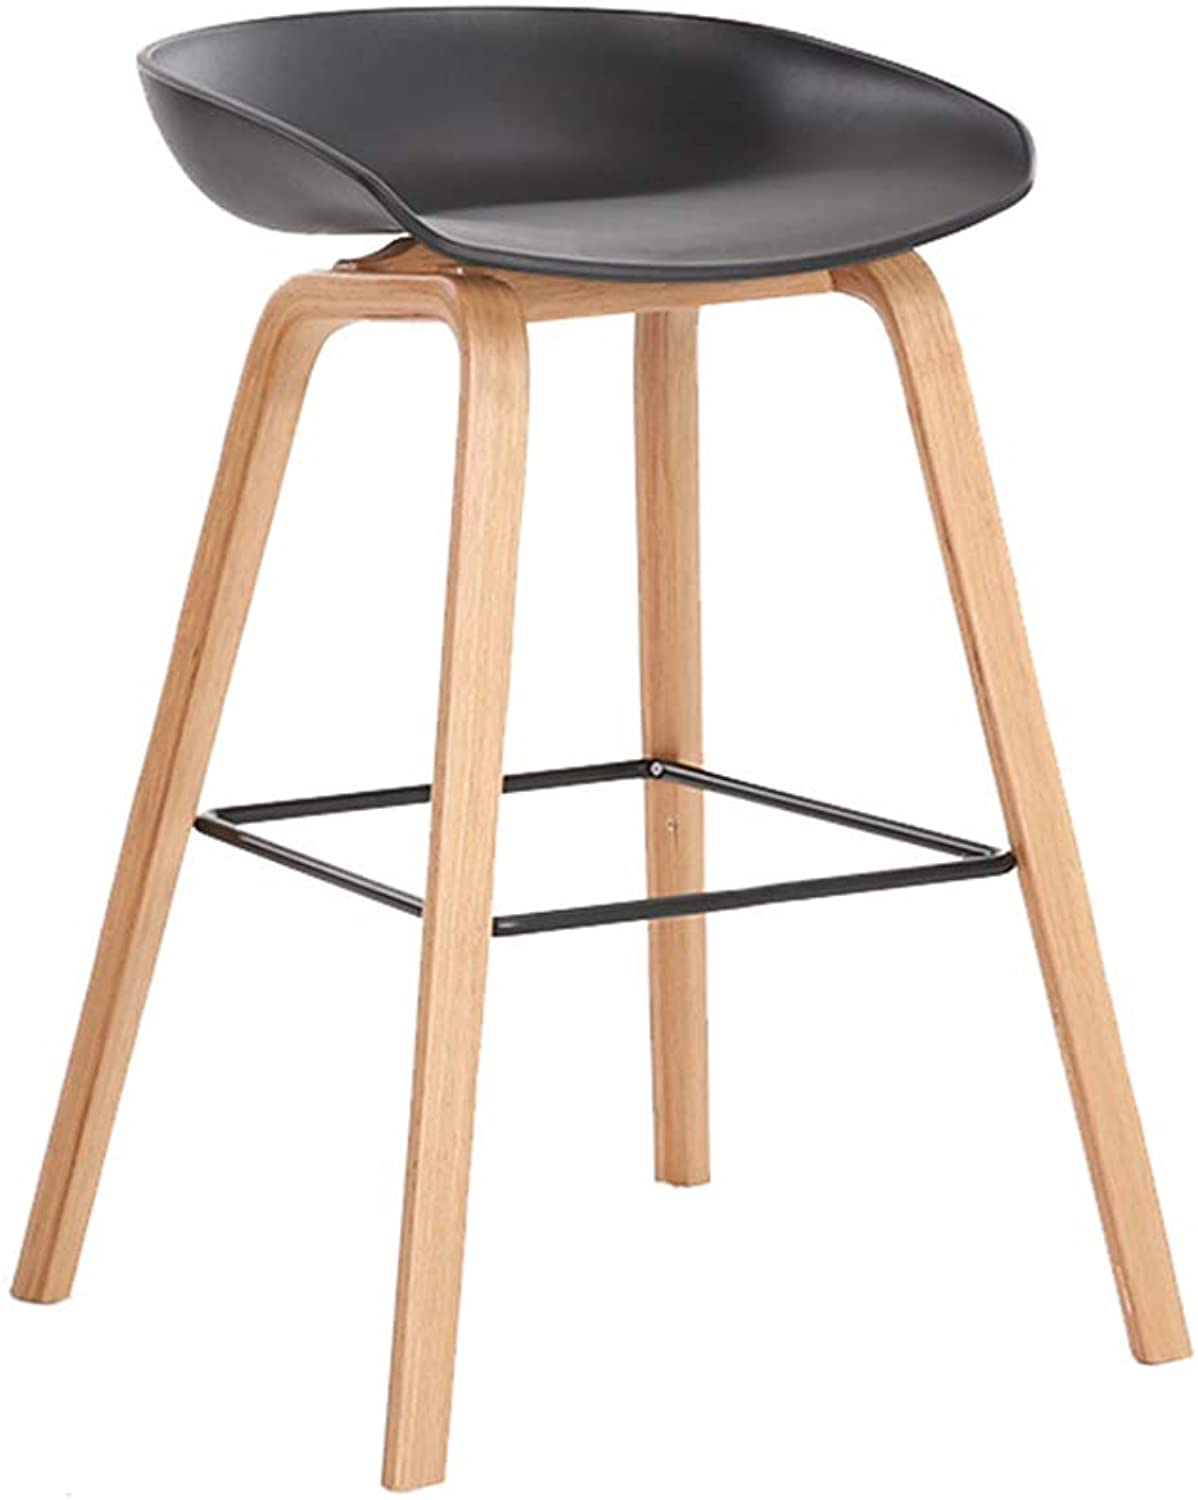 Bar Stool Creative Bar Chair Nordic Bar Chair Modern Minimalist Front Desk High Stool for Wooden Legs for Household Bar Pub Counter Kitchen Cafe